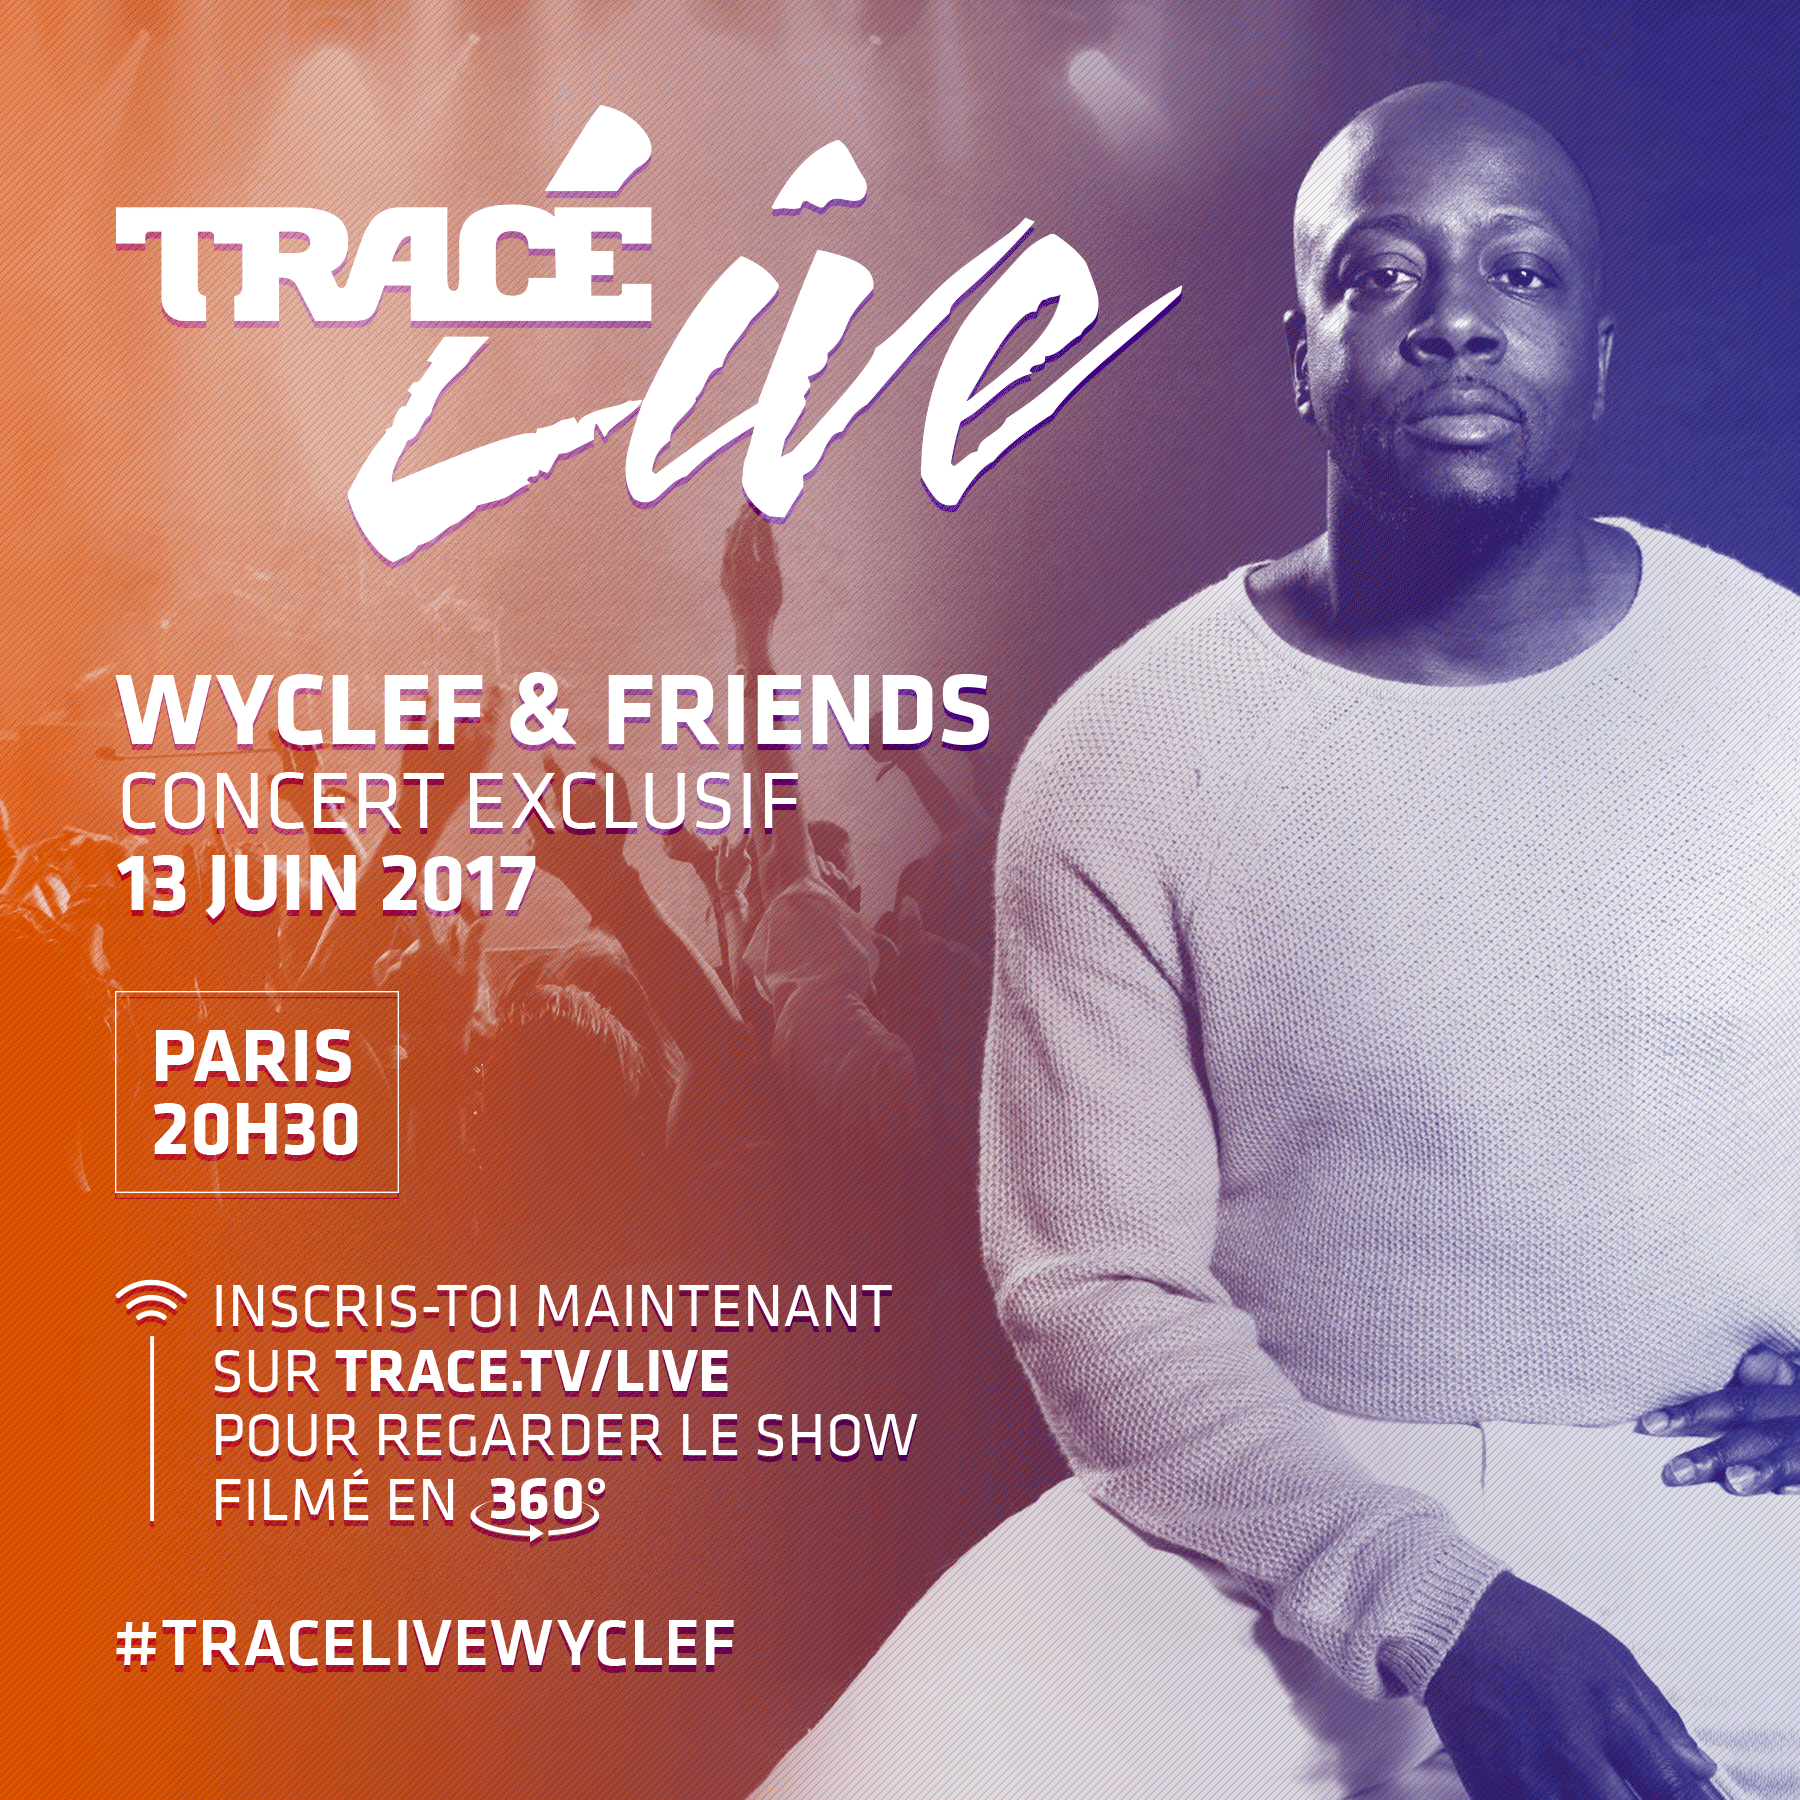 TRACE-LIVE-INSTA-POST-WYCLEF-PARIS